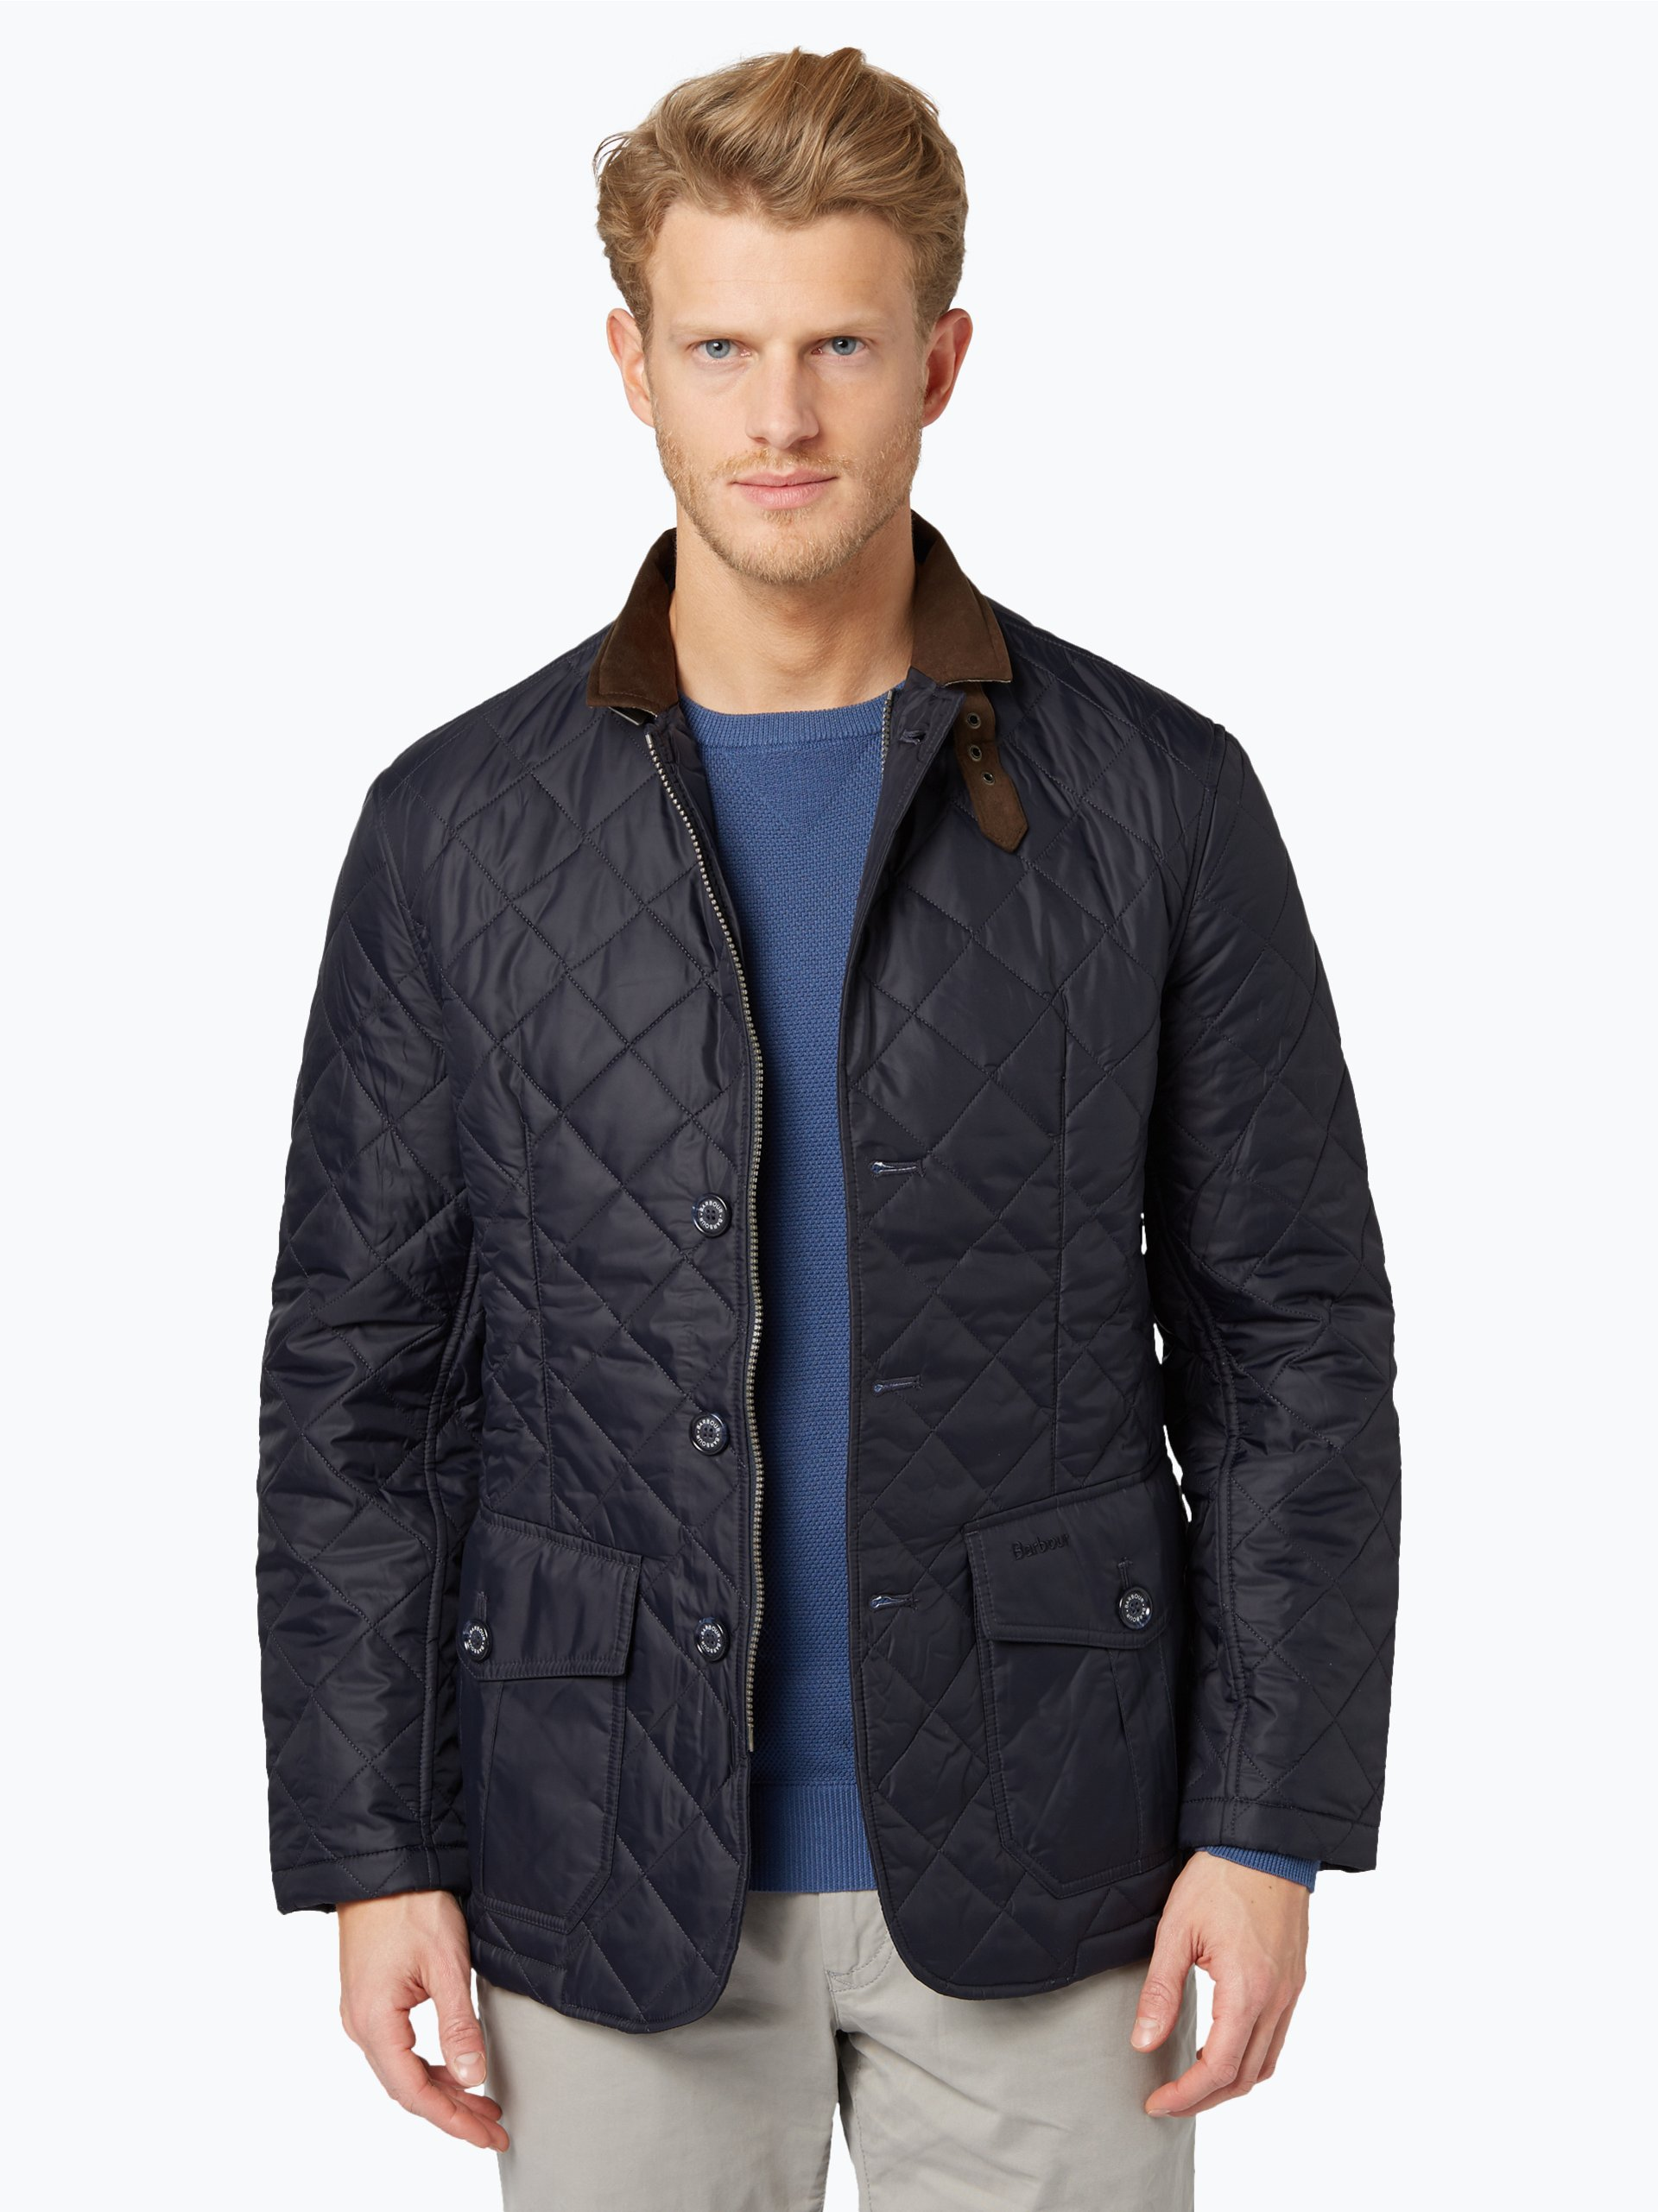 Barbour Herren Steppjacke - Quilted Sander